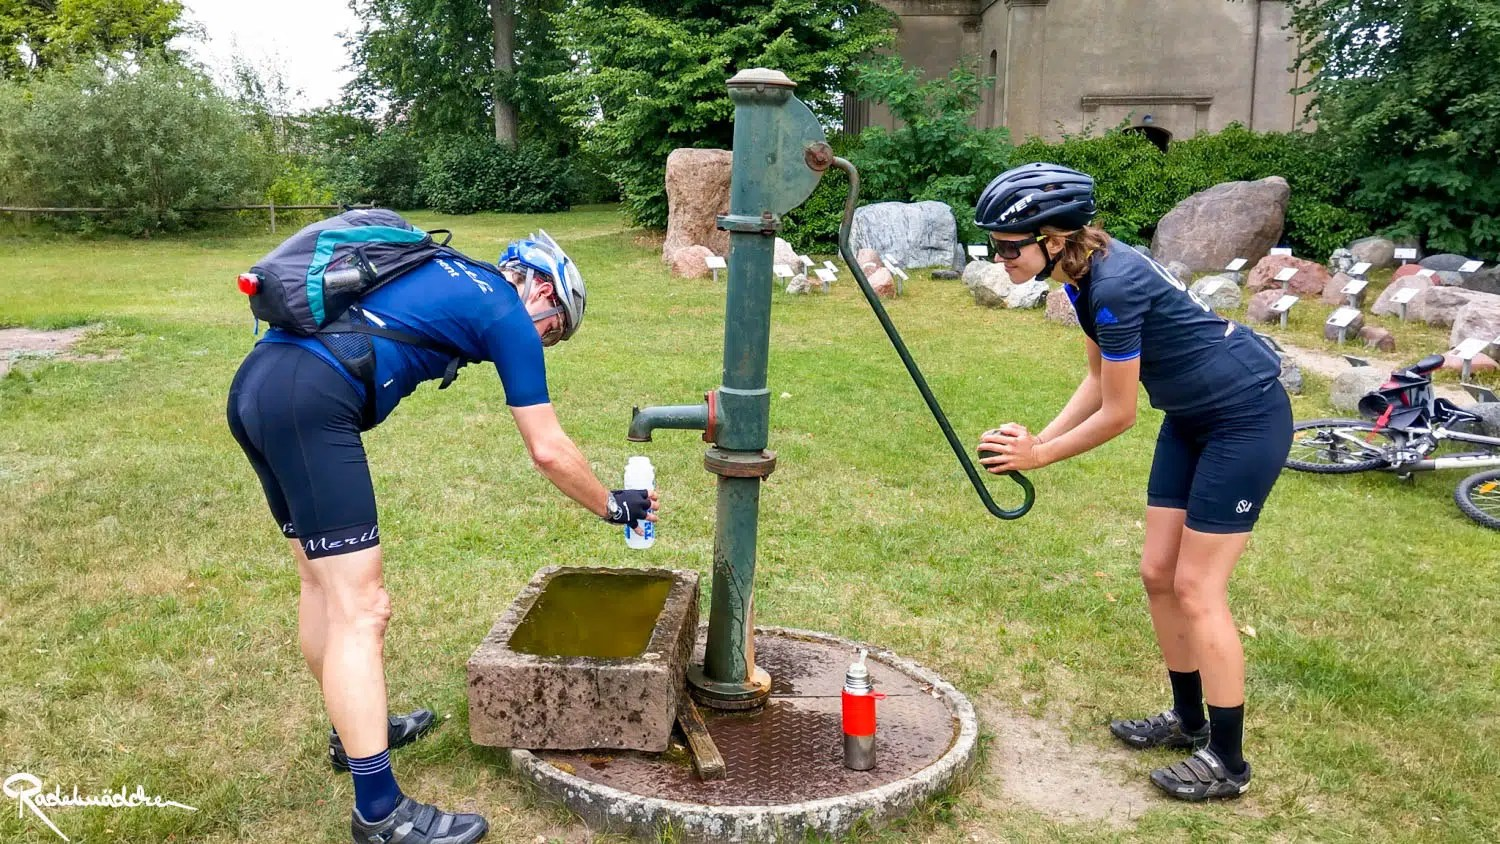 Cyclists get water